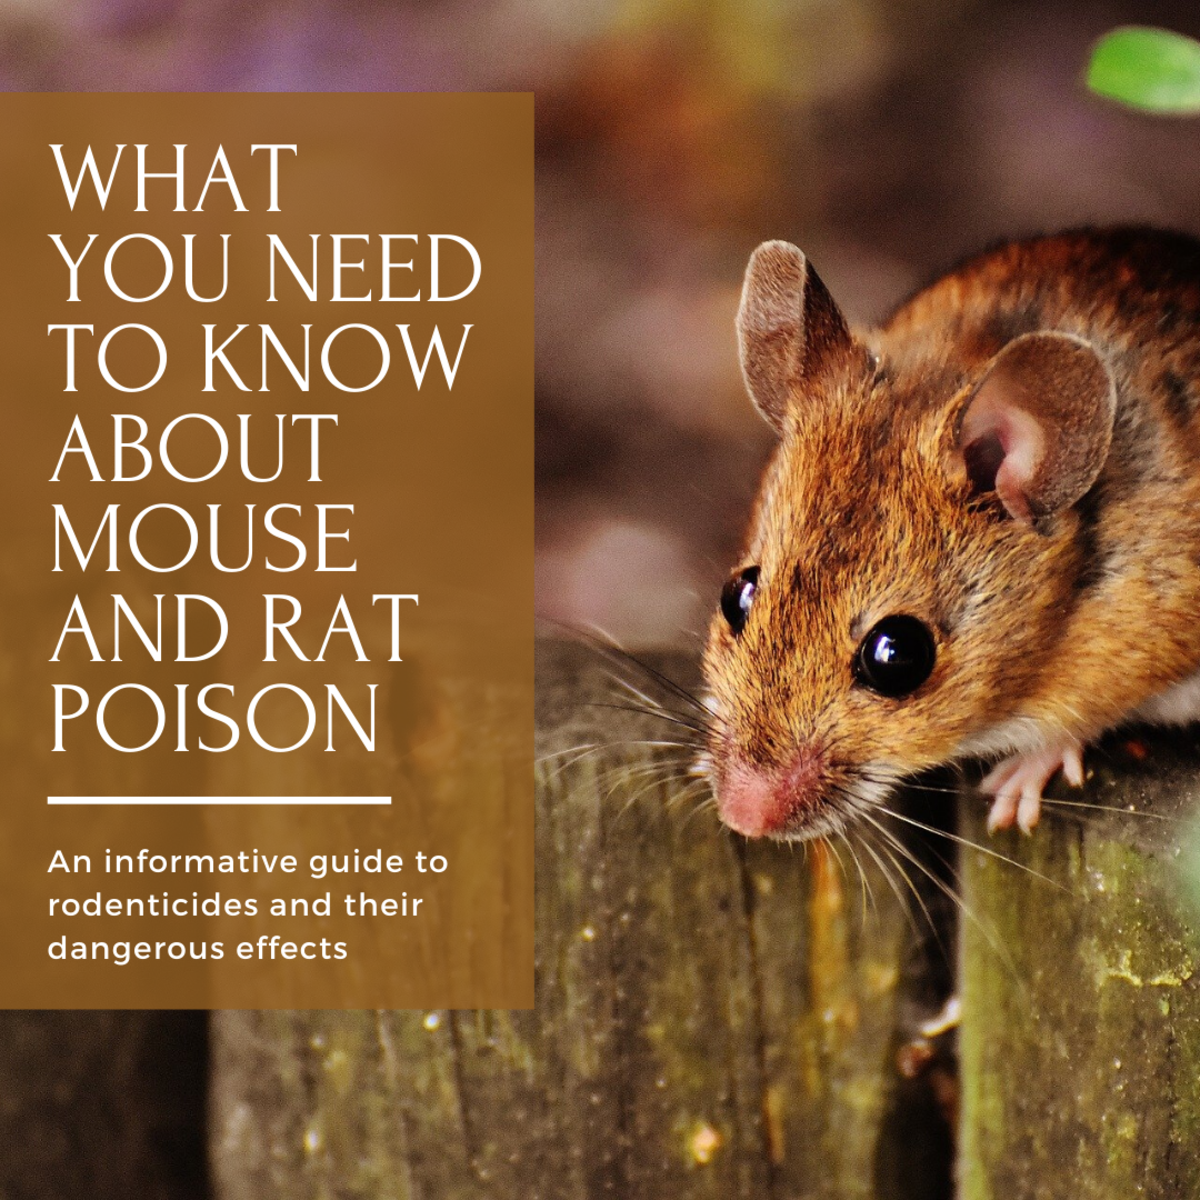 Mouse and Rat Poison:  What They're Not Telling Us